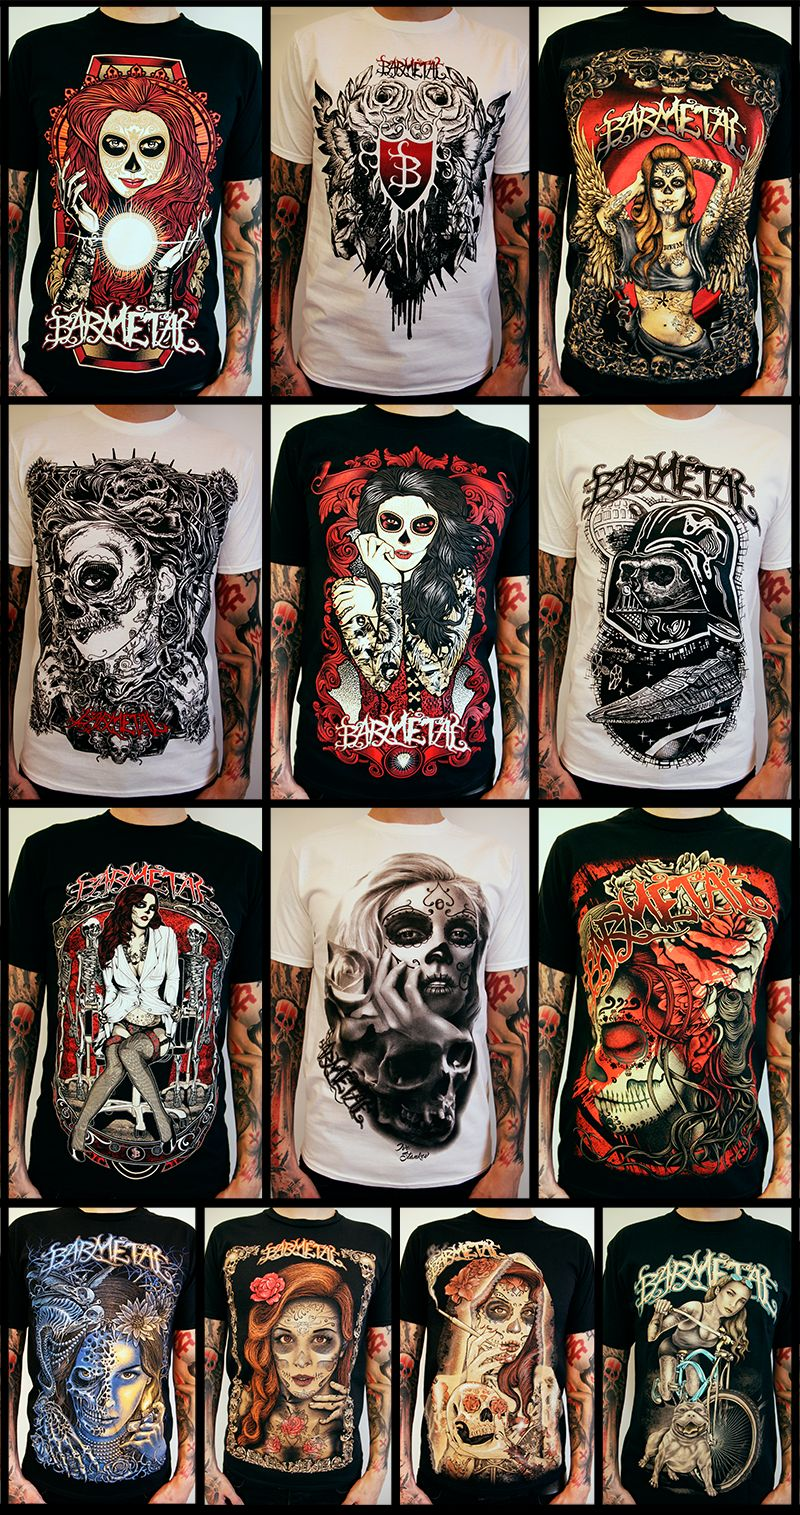 Barmetal Holy 13 Collection All Shirts medf